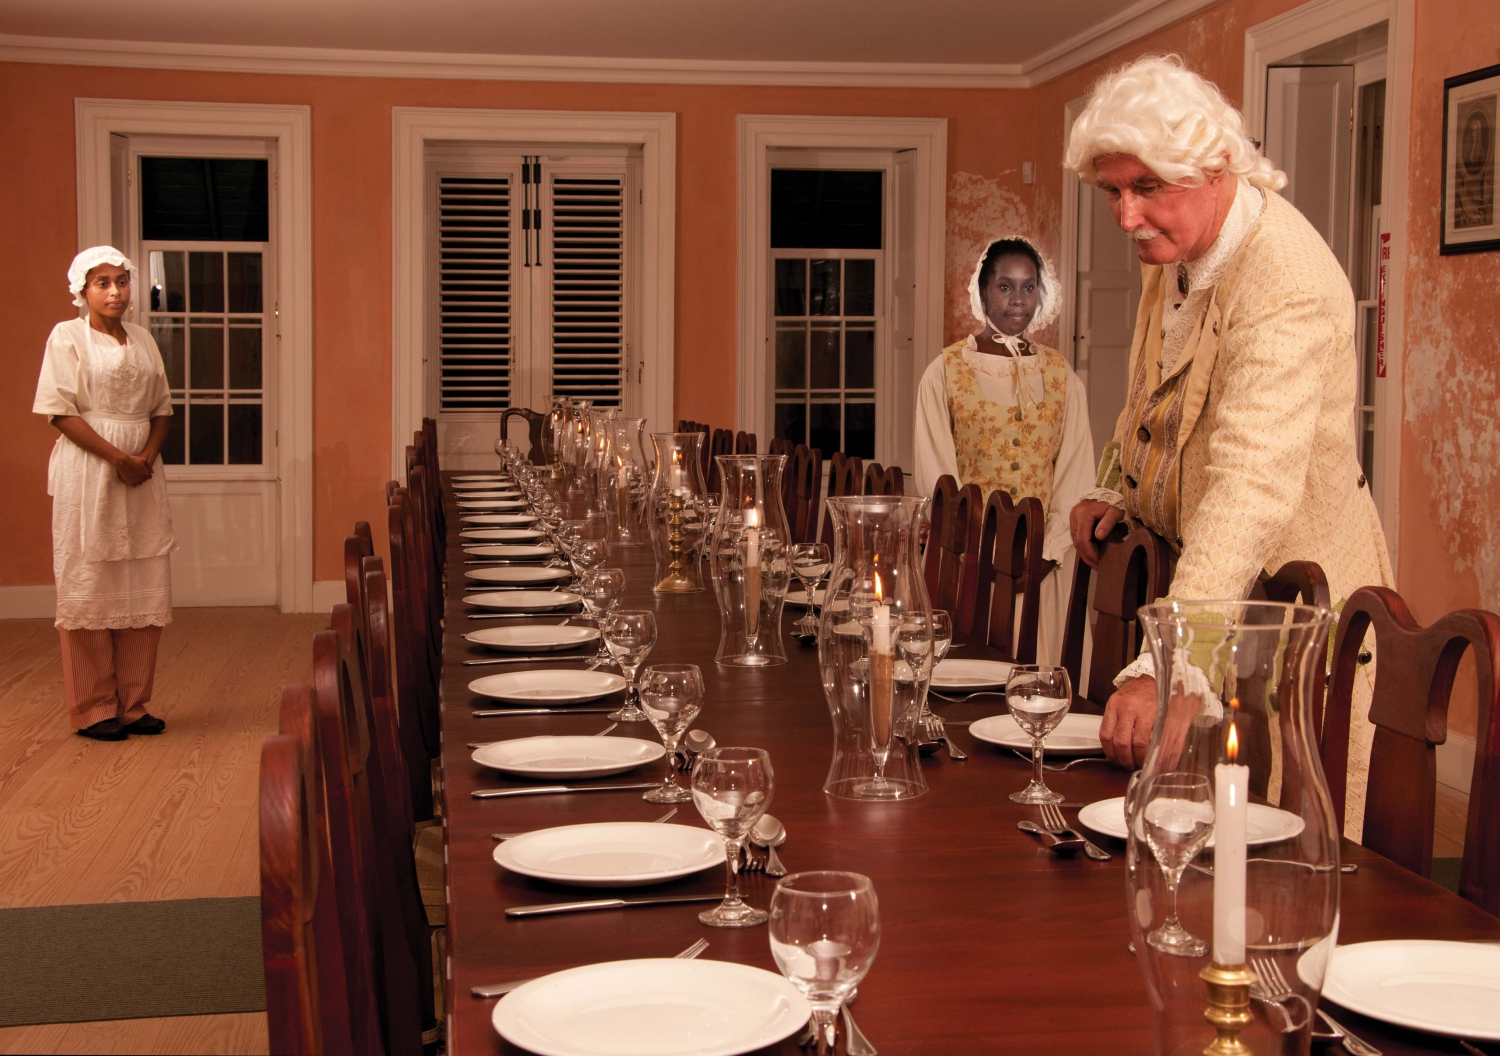 Dinner with George Washington